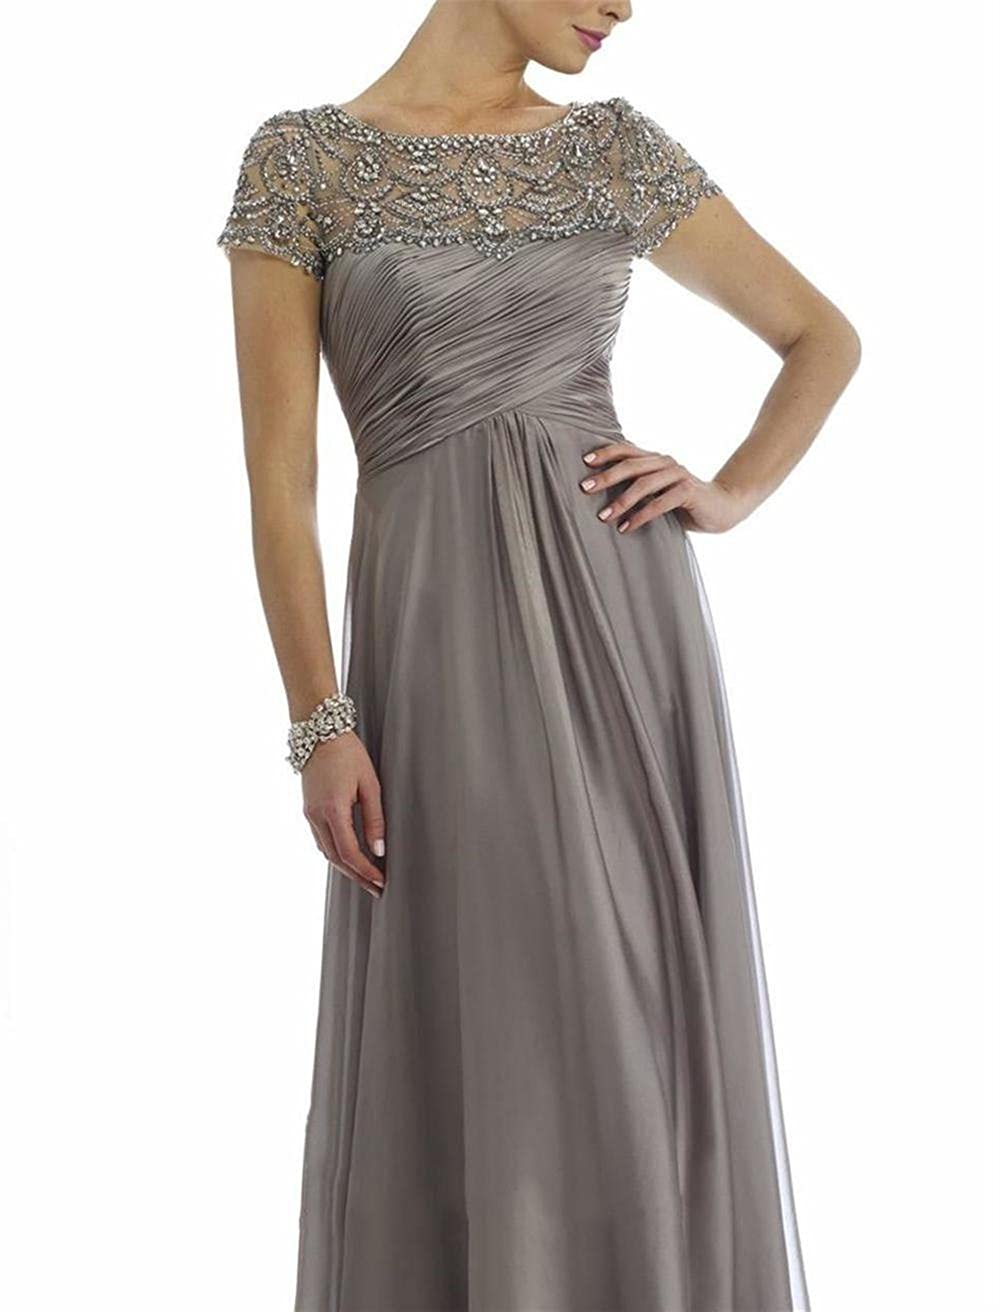 885cbf92ec2d5b Newdeve Chiffon Mother Of The Bride Dresses Long Pleated With Rhinestones  Short Sleeve at Amazon Women's Clothing store: